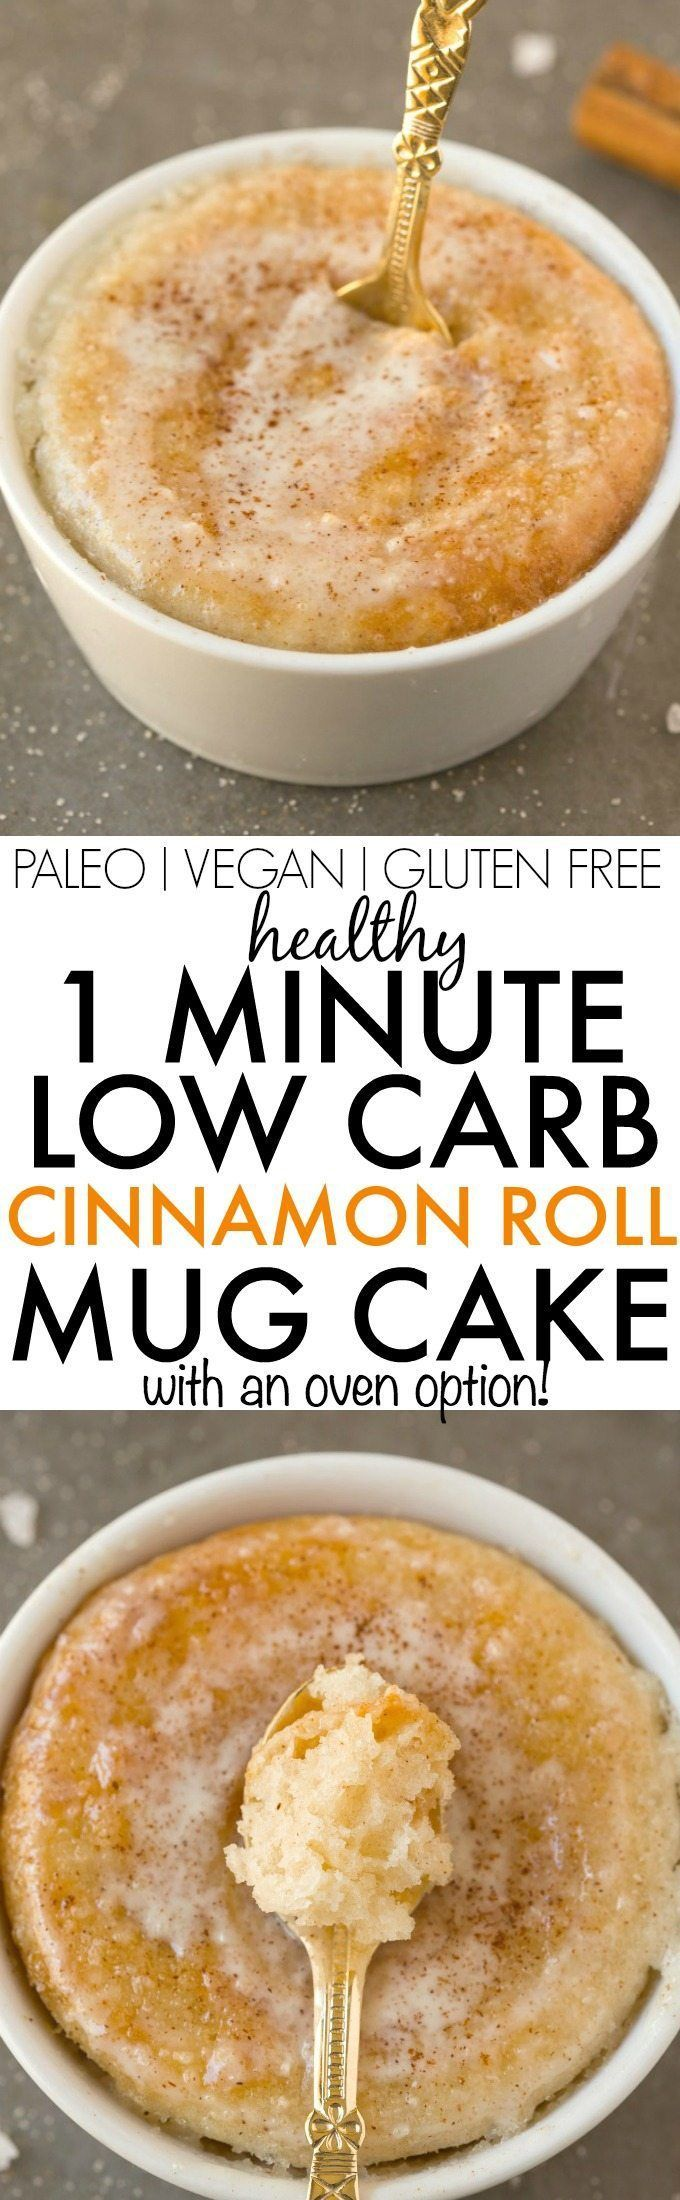 Healthy 1 Minute LOW CARB Cinnamon Roll Mug Cake- Light, fluffy and moist in the inside! Single servinf and packed full of protein and NO sugar whatsoever-Even the creamy glaze! {#vegan, #glutenfree, #paleo} #healthyfood #foodbloggers #diy #recipe #lbloggers